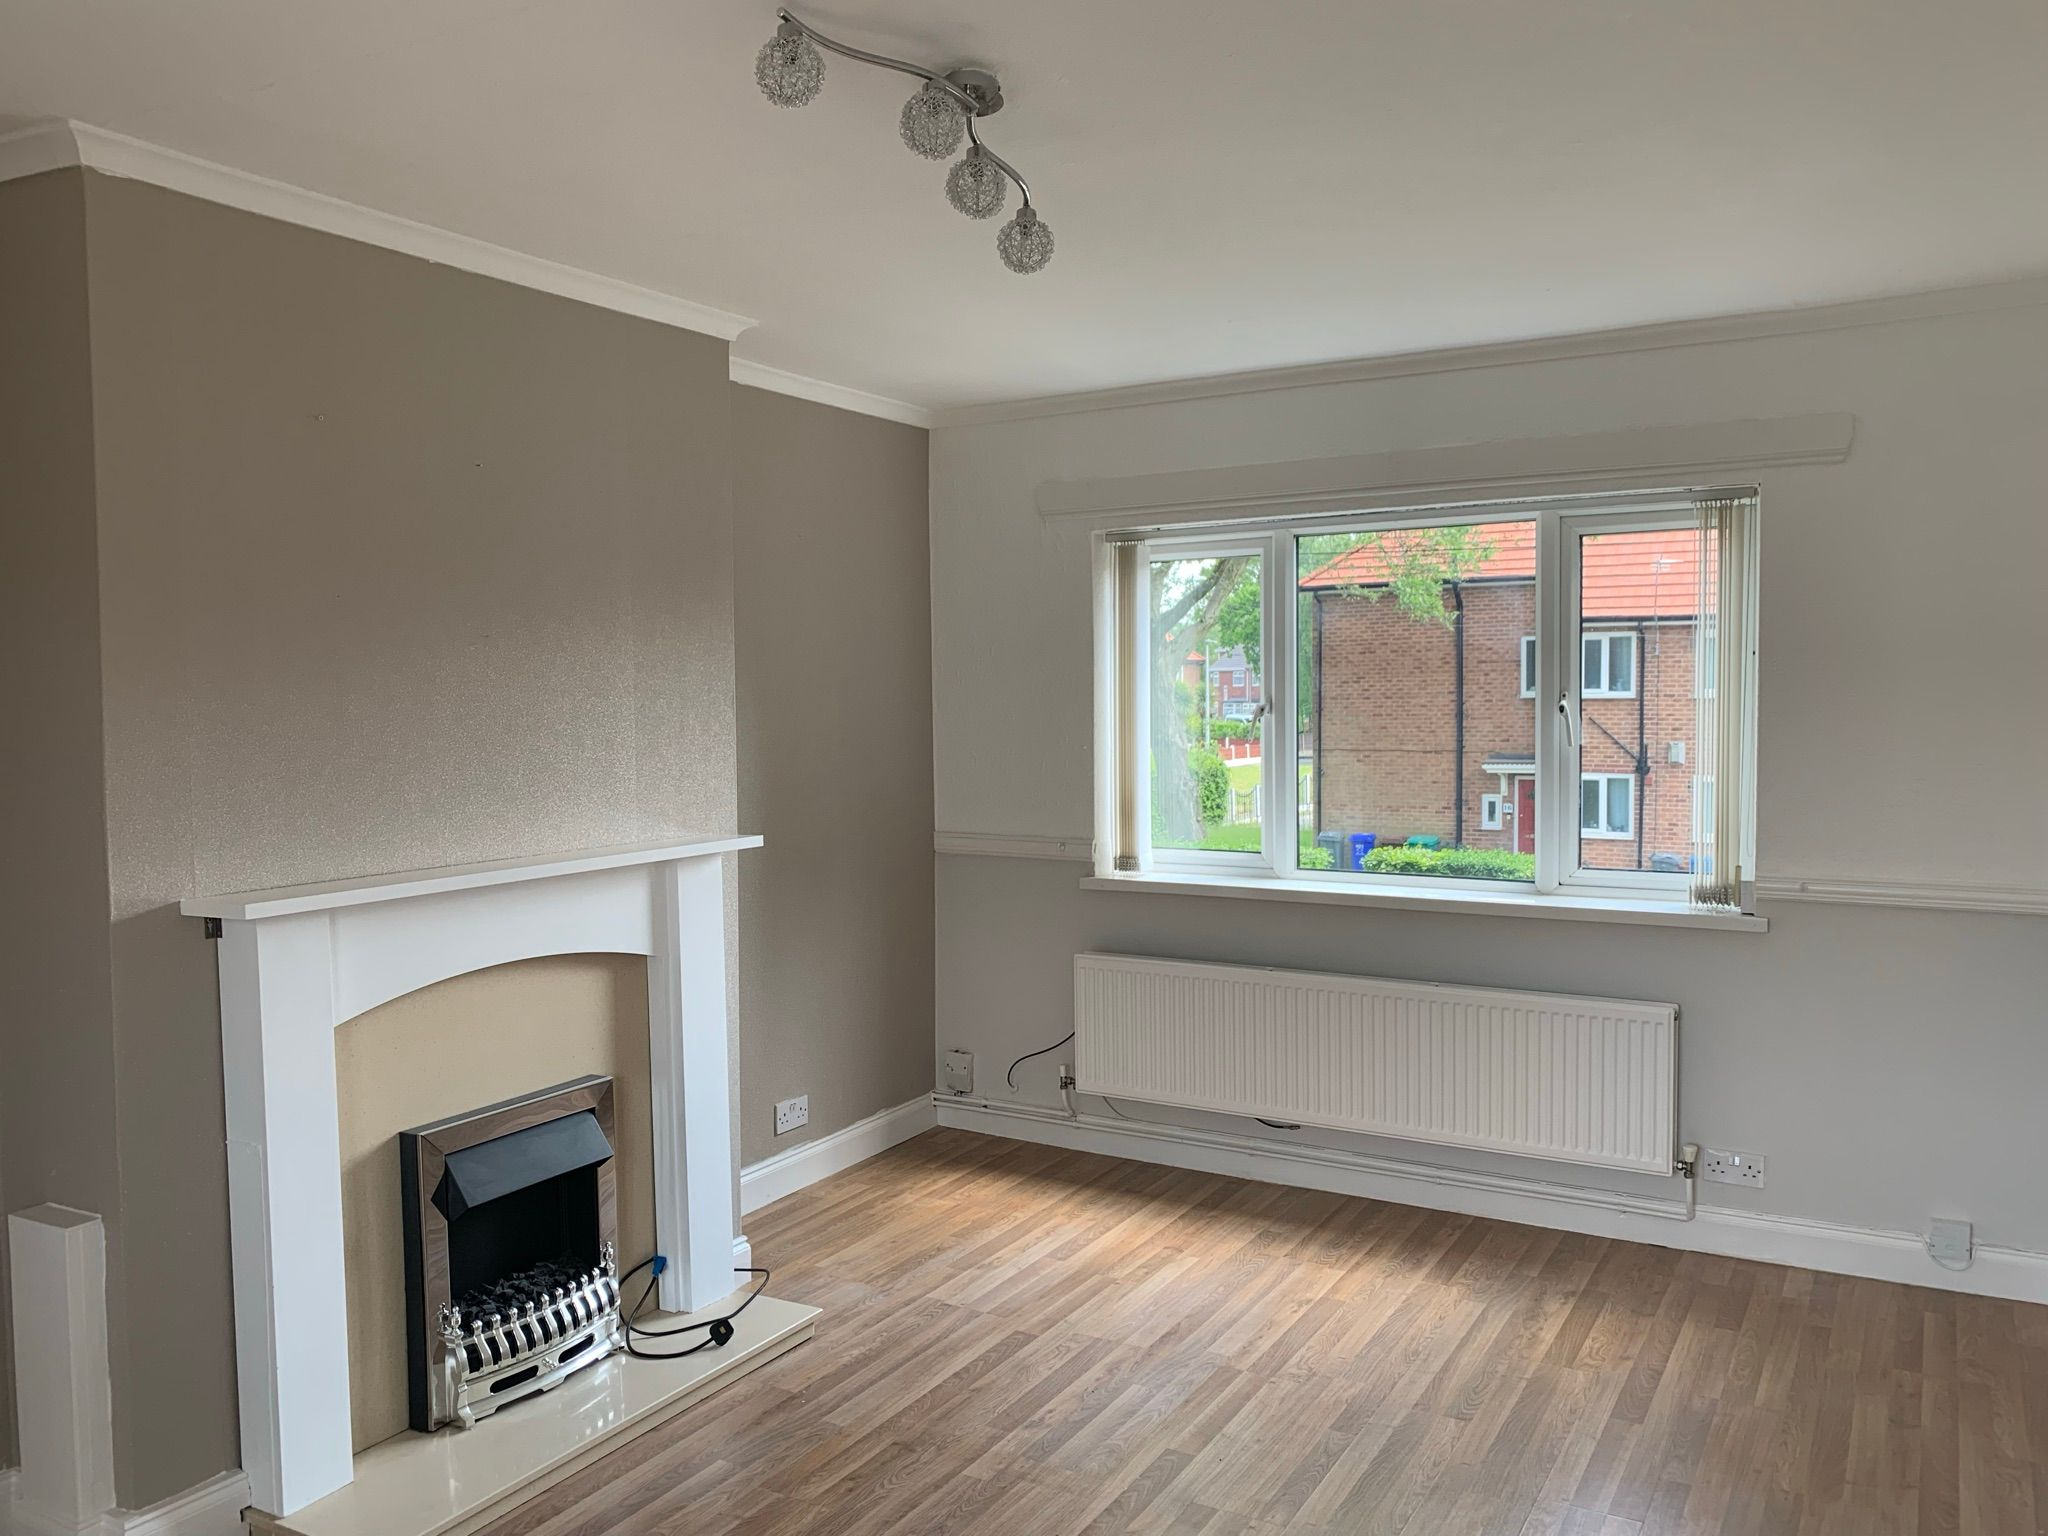 2 bedroom flat flat/apartment Let in Manchester - Photograph 5.